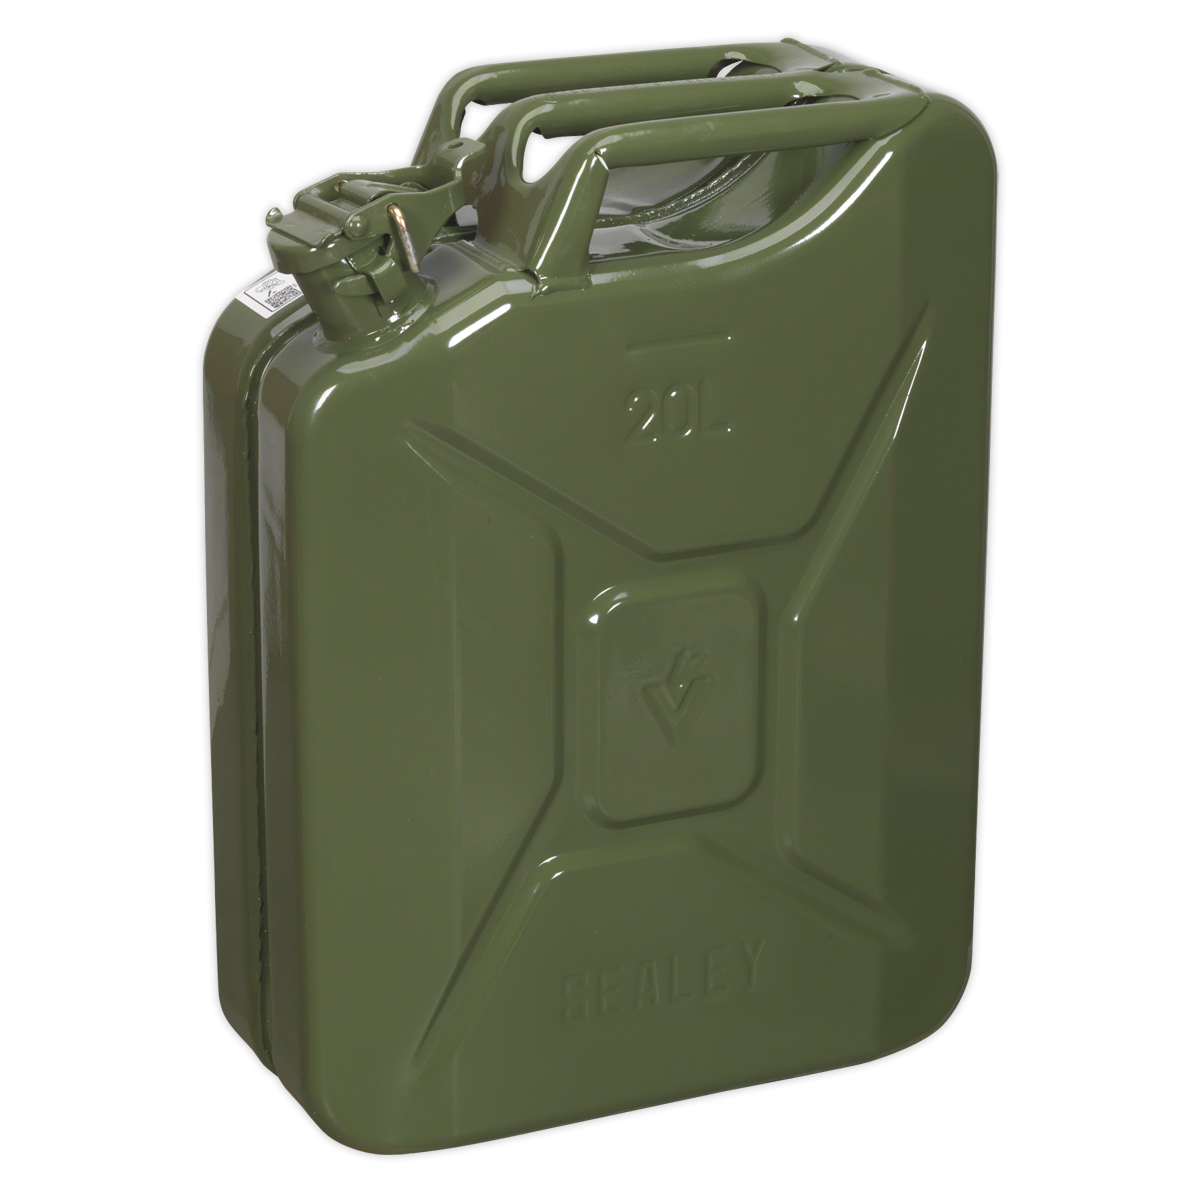 Jerry Can 20ltr - Grün   SEALEY JC20G by Sealey   New